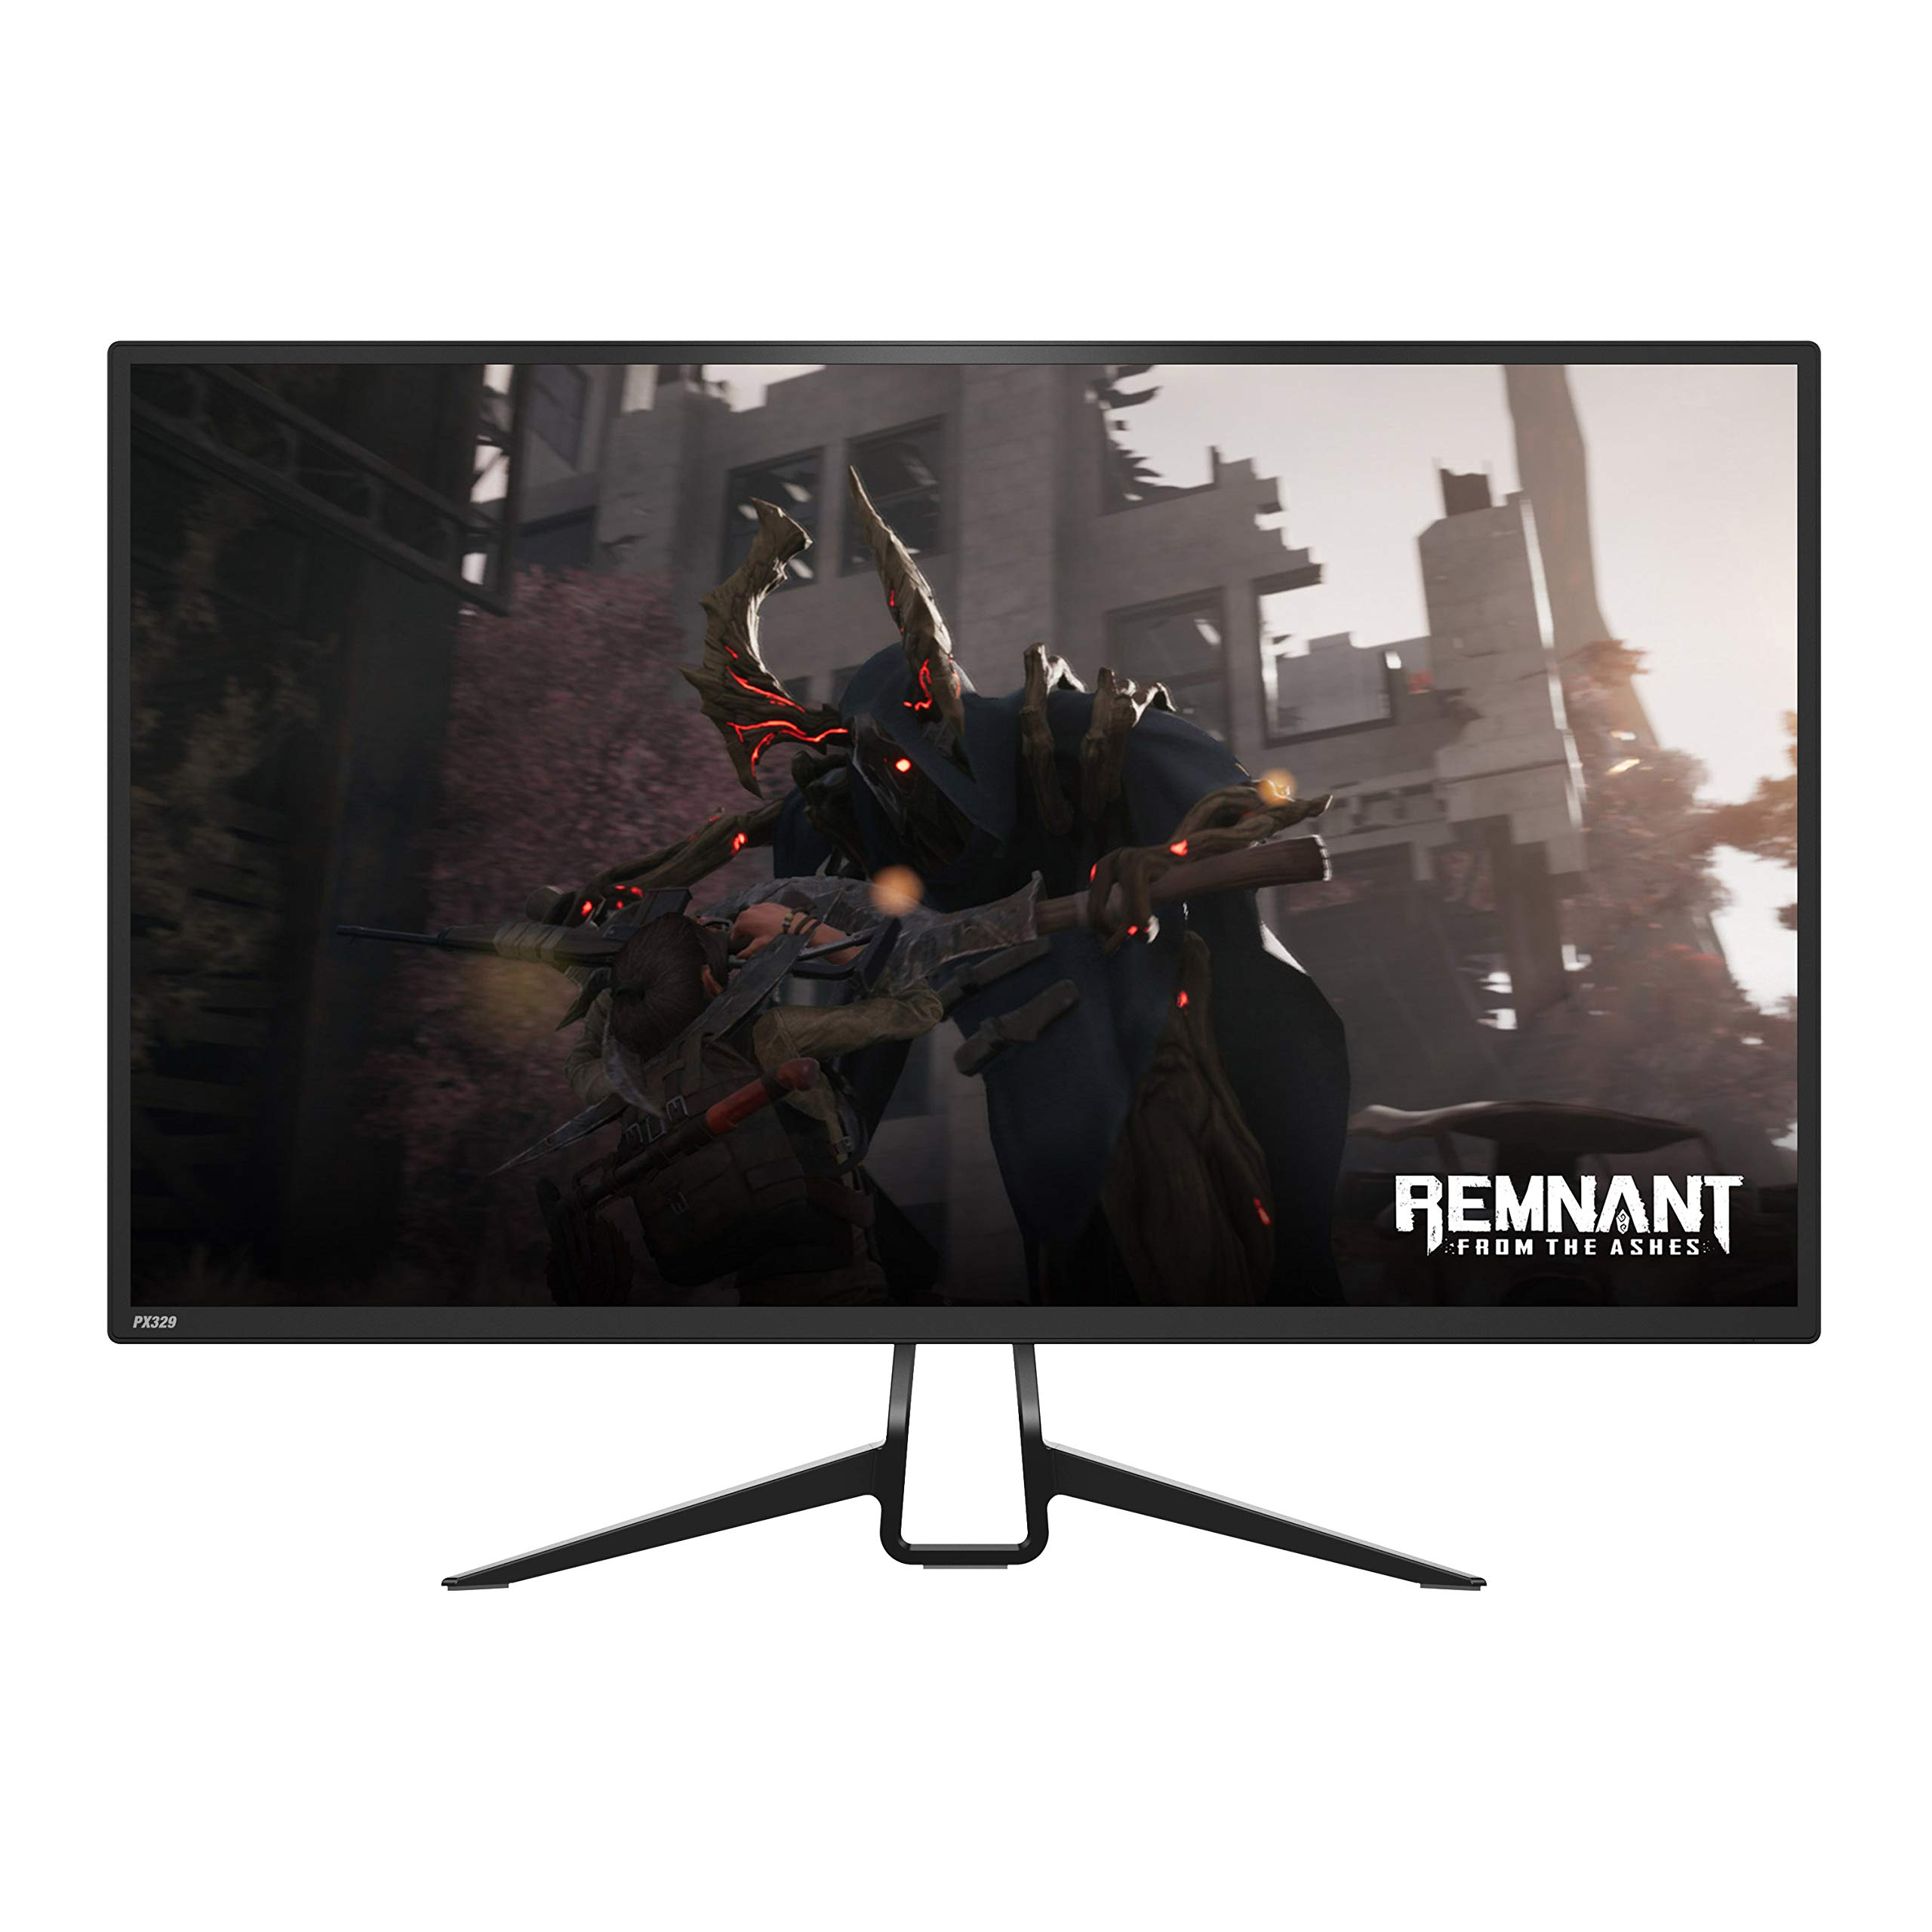 Pixio PX329 32 inch 165Hz WQHD 2560 x 1440 Wide Screen Display Professional 1440p Flat 32-inch AMD Radeon FreeSync Certified Gaming Monitor, 2 Years Warranty, Compatible with Xbox One X 120Hz and PS4 by Pixio